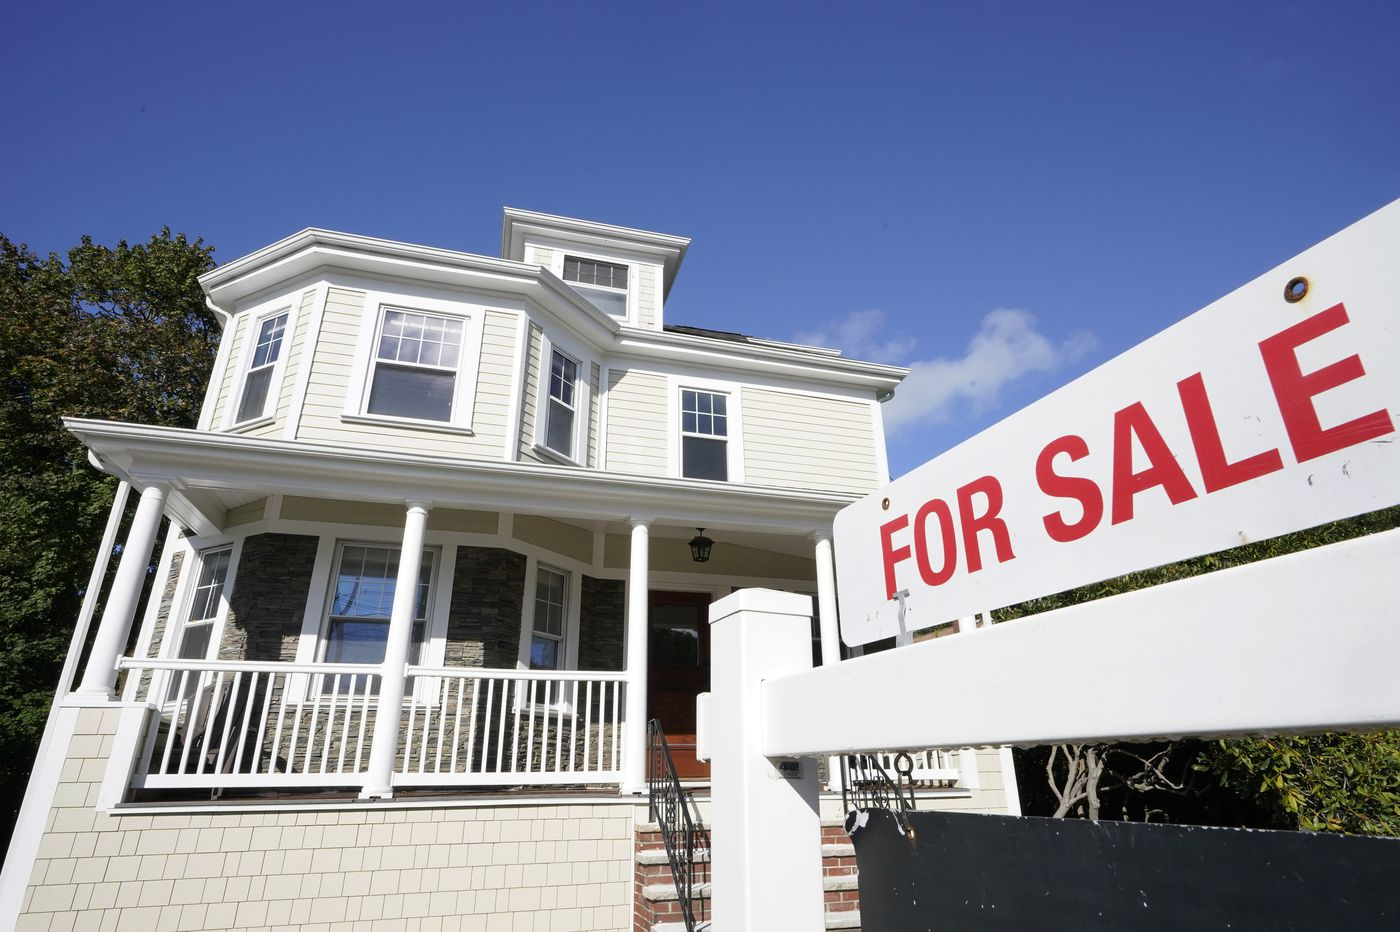 30-year mortgage rate drops to record low